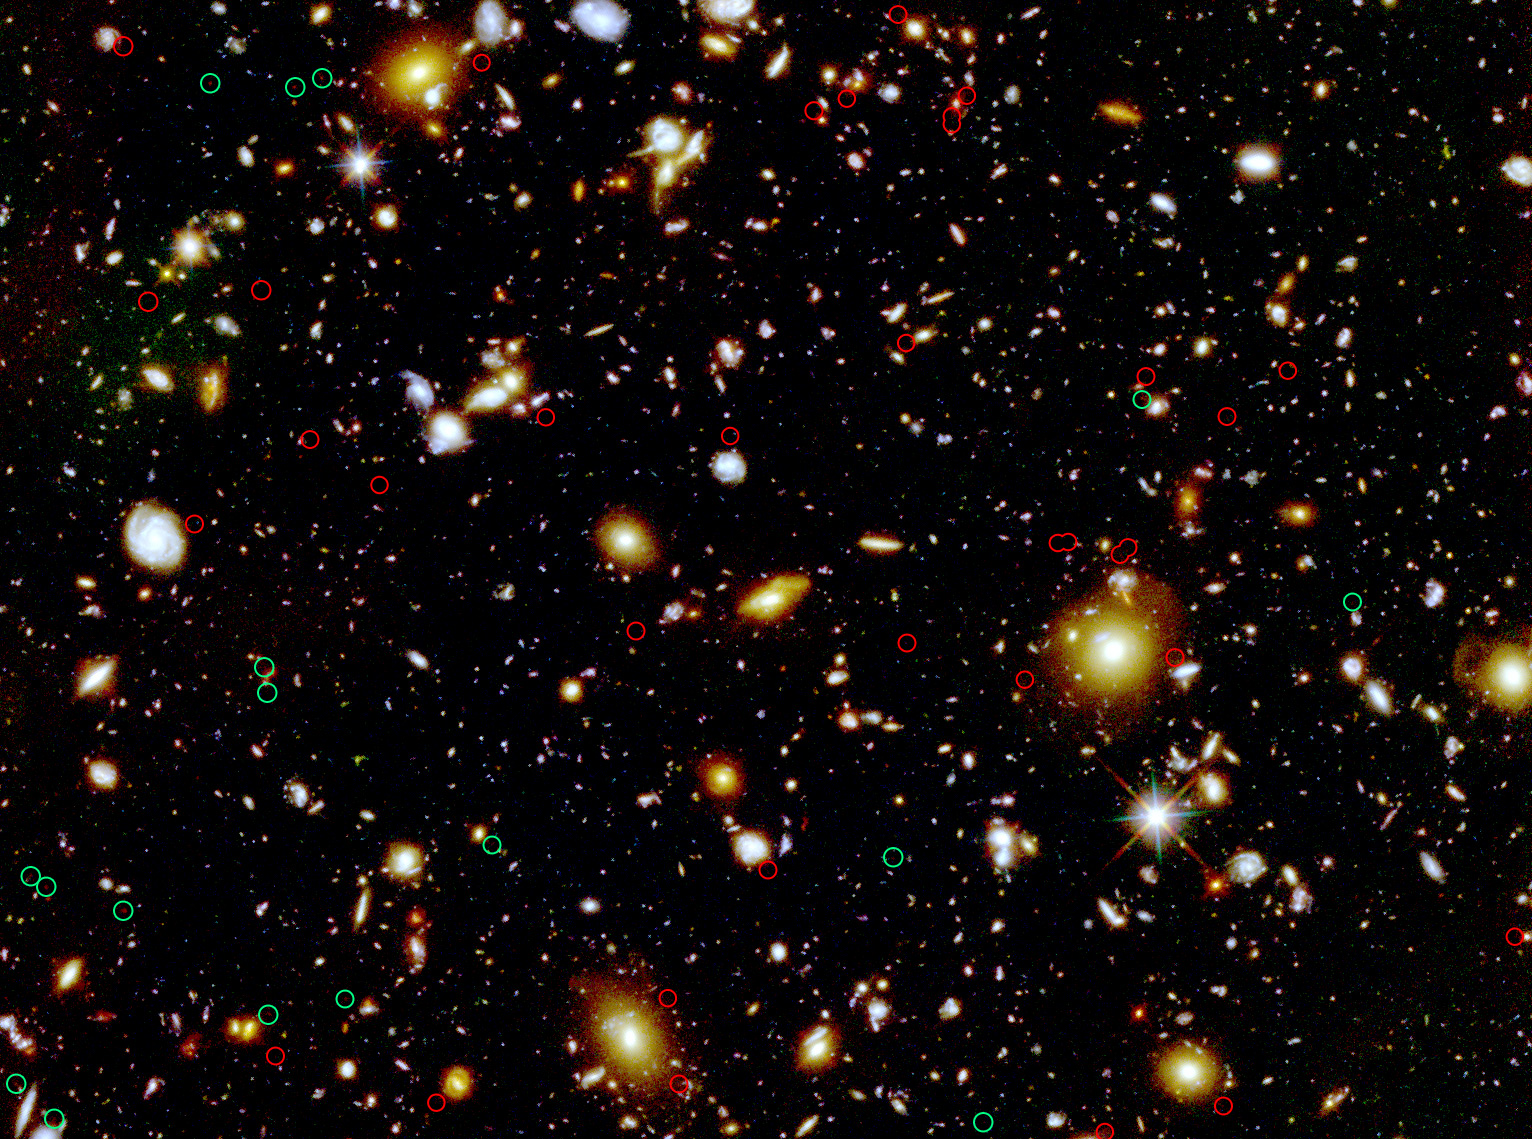 hubble telescope galaxies high def - photo #37